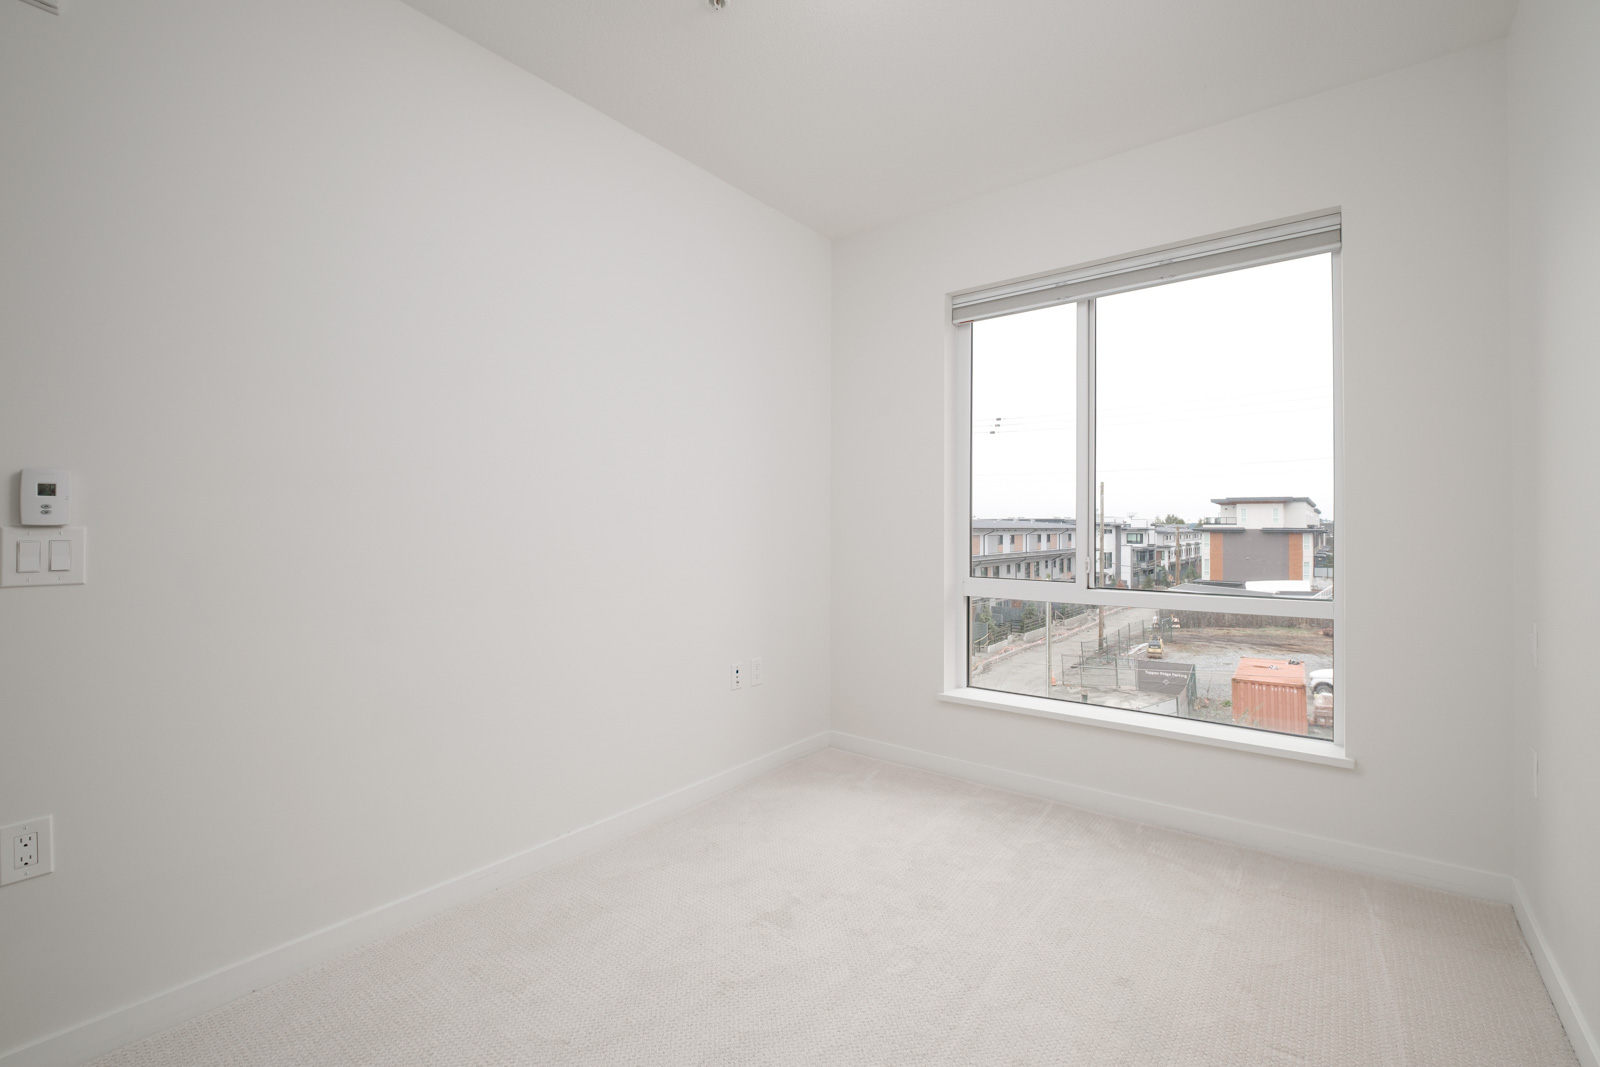 living room with view in rental condo at 205-615 East 3rd Street in North Vancouver